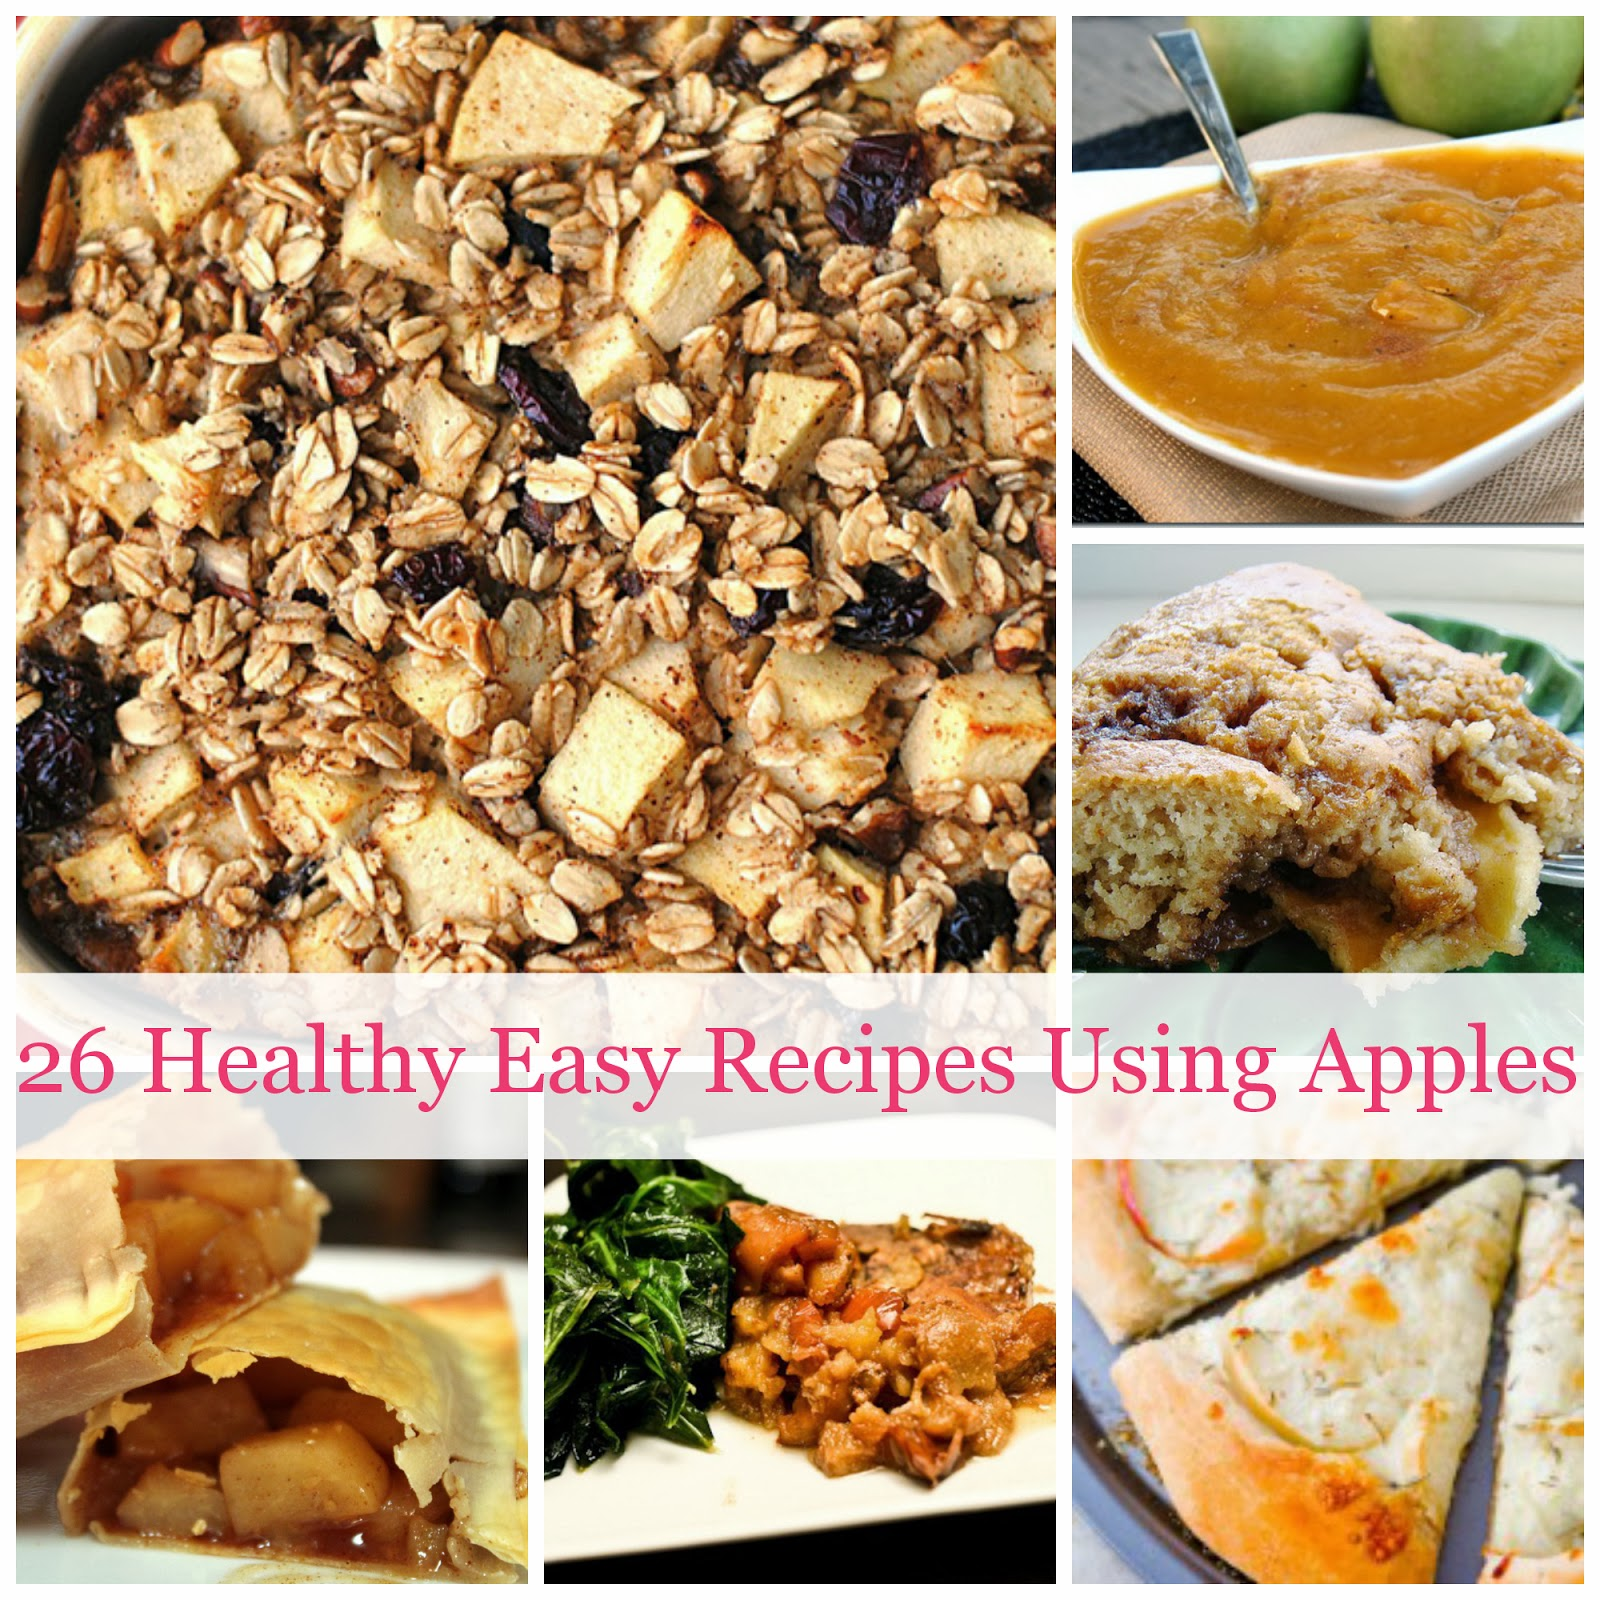 26 Healthy Easy Recipes Using Apples